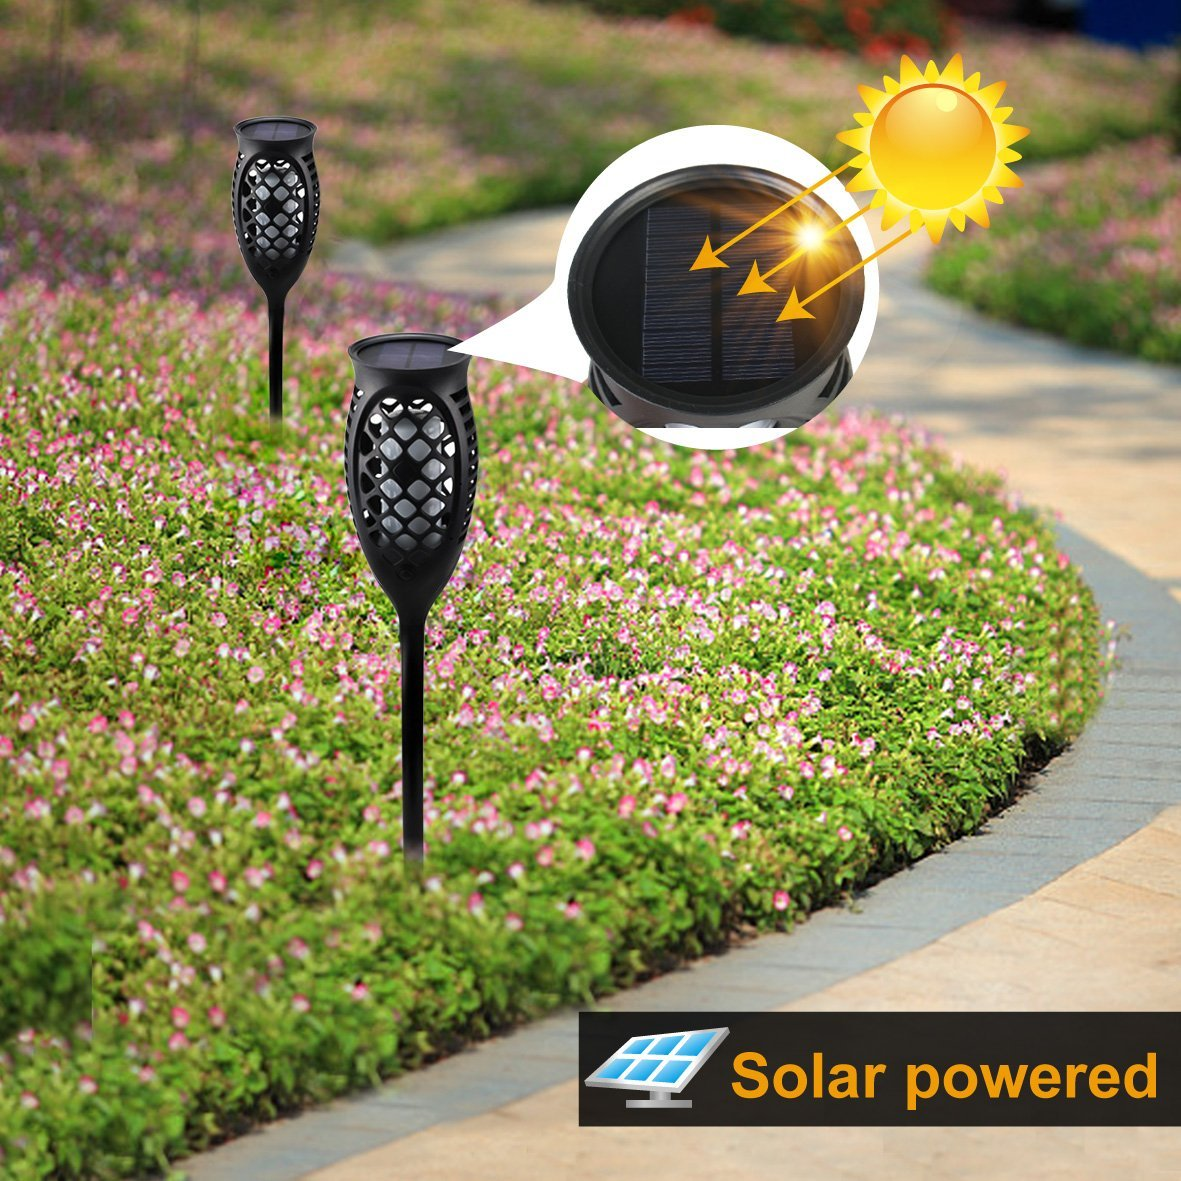 Juhefa Solar Lights Outdoor, Solar Torch Light Flickering Flame 99 LED Waterproof Garden Lighting Pathway Patio Landscape Decoration, 3 Modes & 3 Mounting Options, Dusk to Dawn Auto On/Off (4) by Juhefa (Image #3)